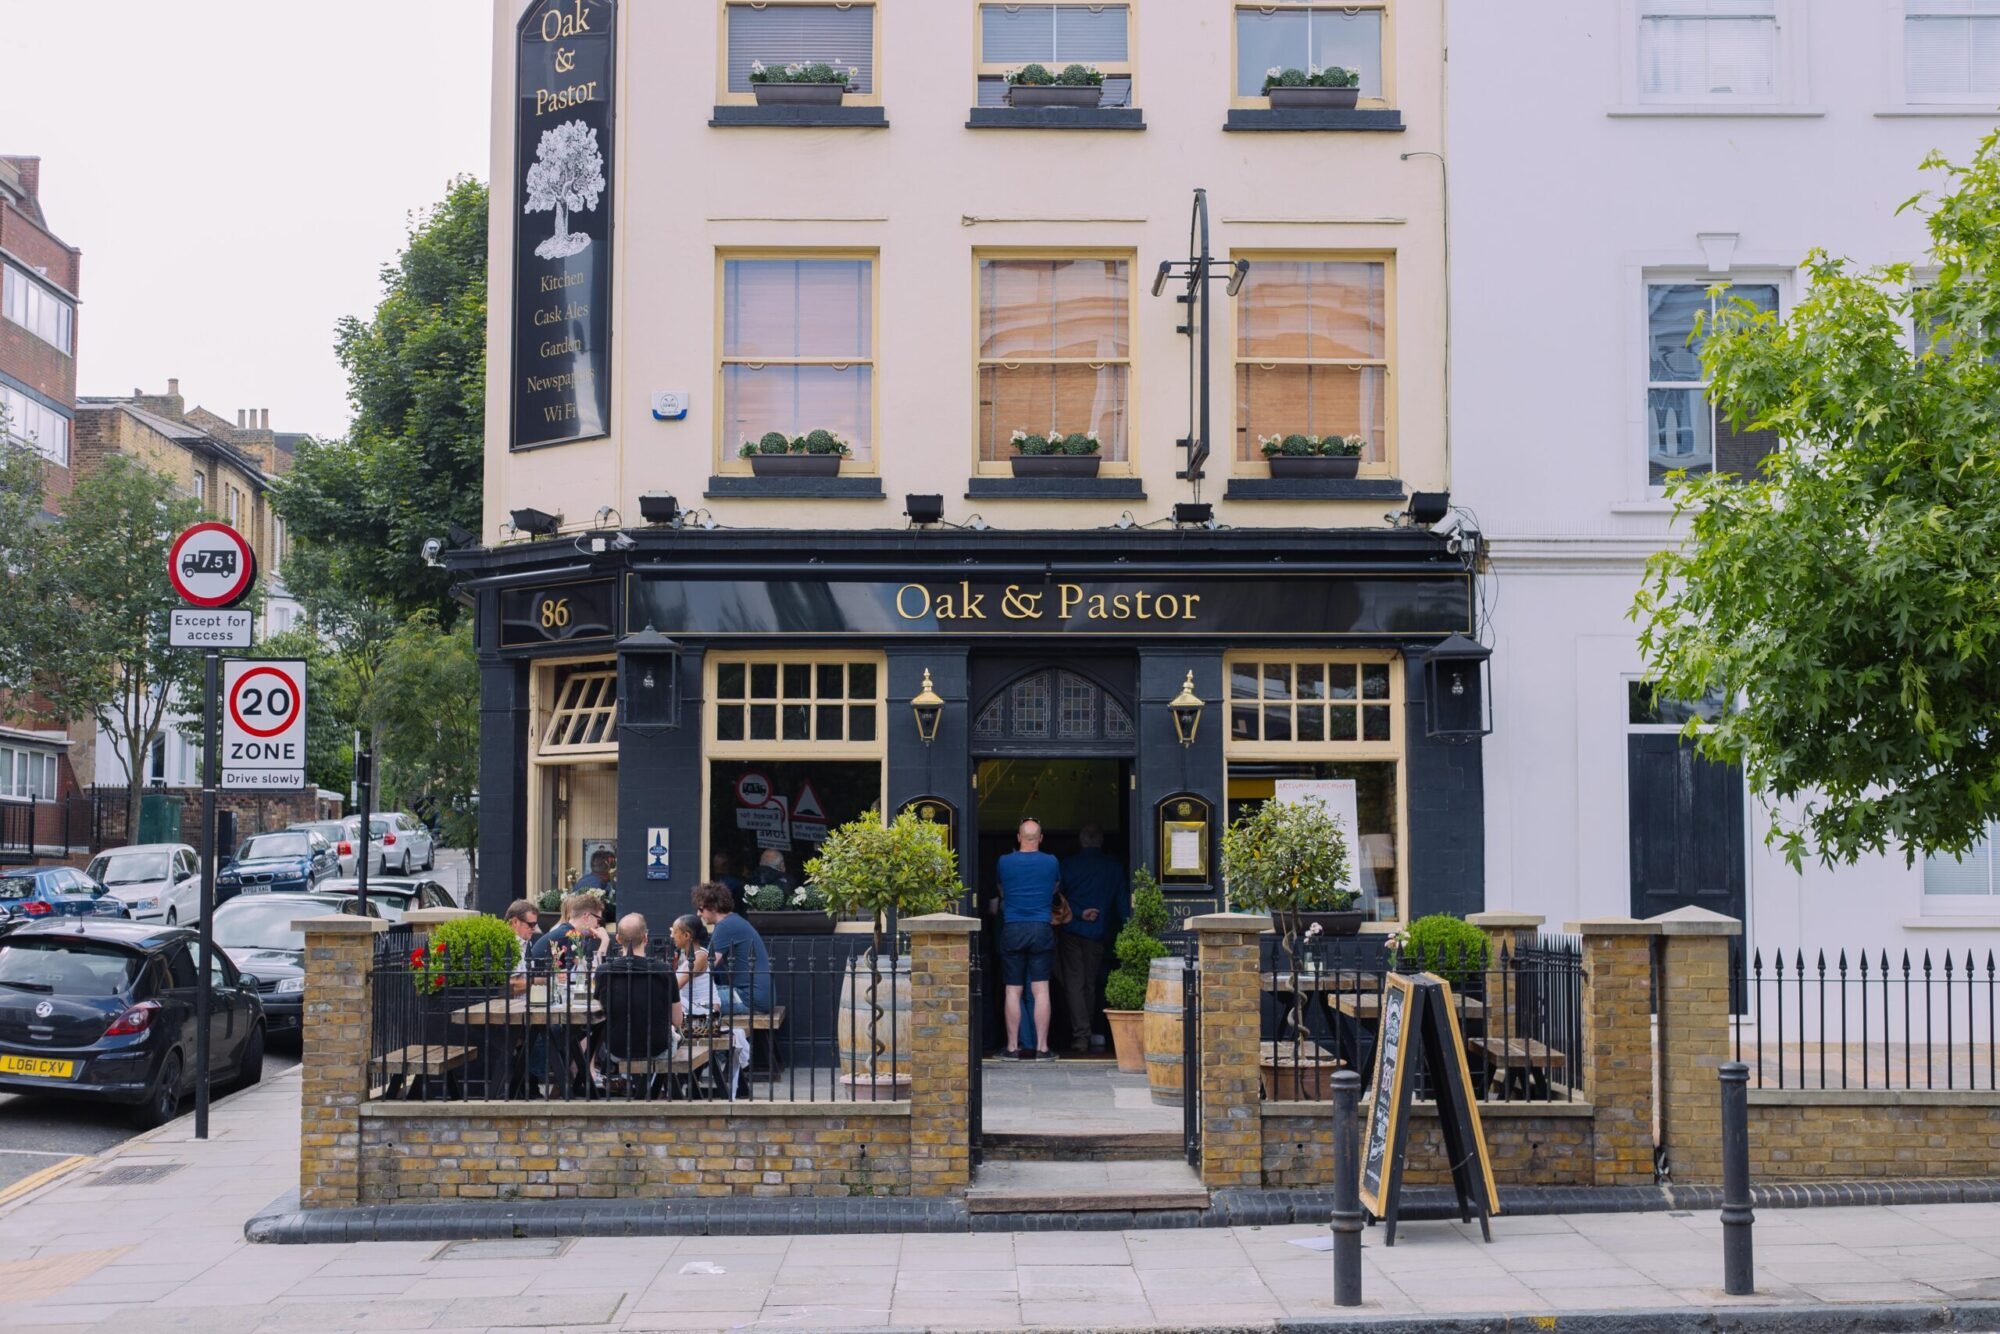 The exterior of the Oak & Pastor, a pub in Archway.